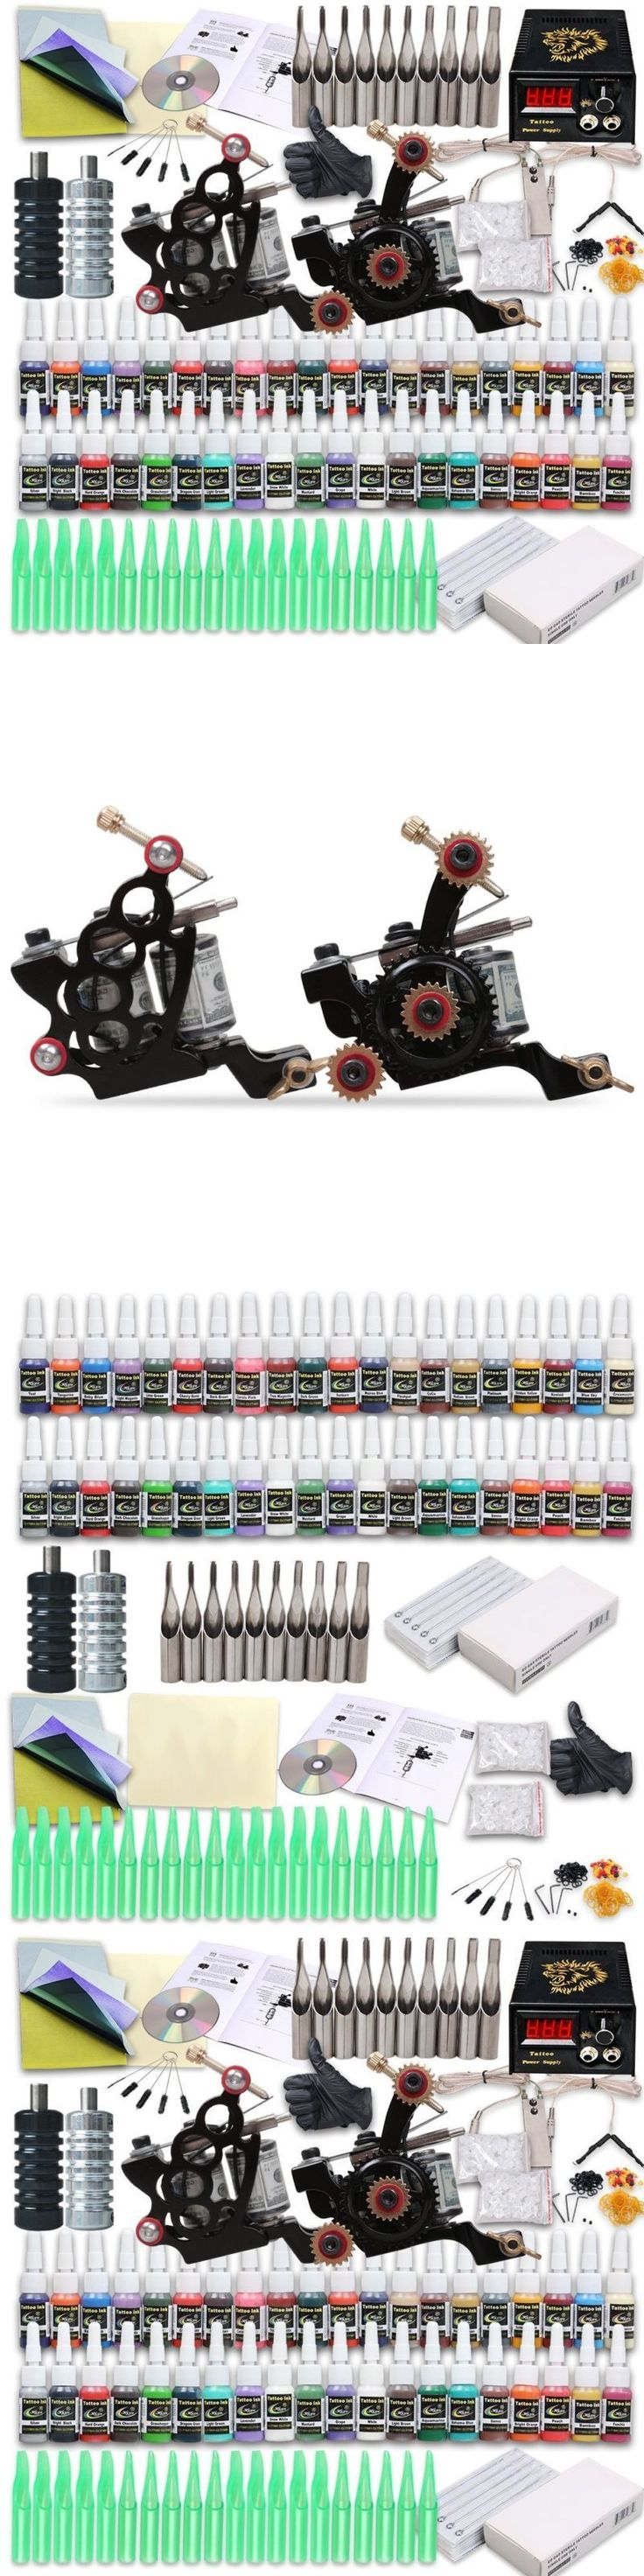 Tattoo Complete Kits: Professional Complete Tattoo Machine Kit 2 Gun 40 Color Ink Needle Power Supply -> BUY IT NOW ONLY: $61.7 on eBay!